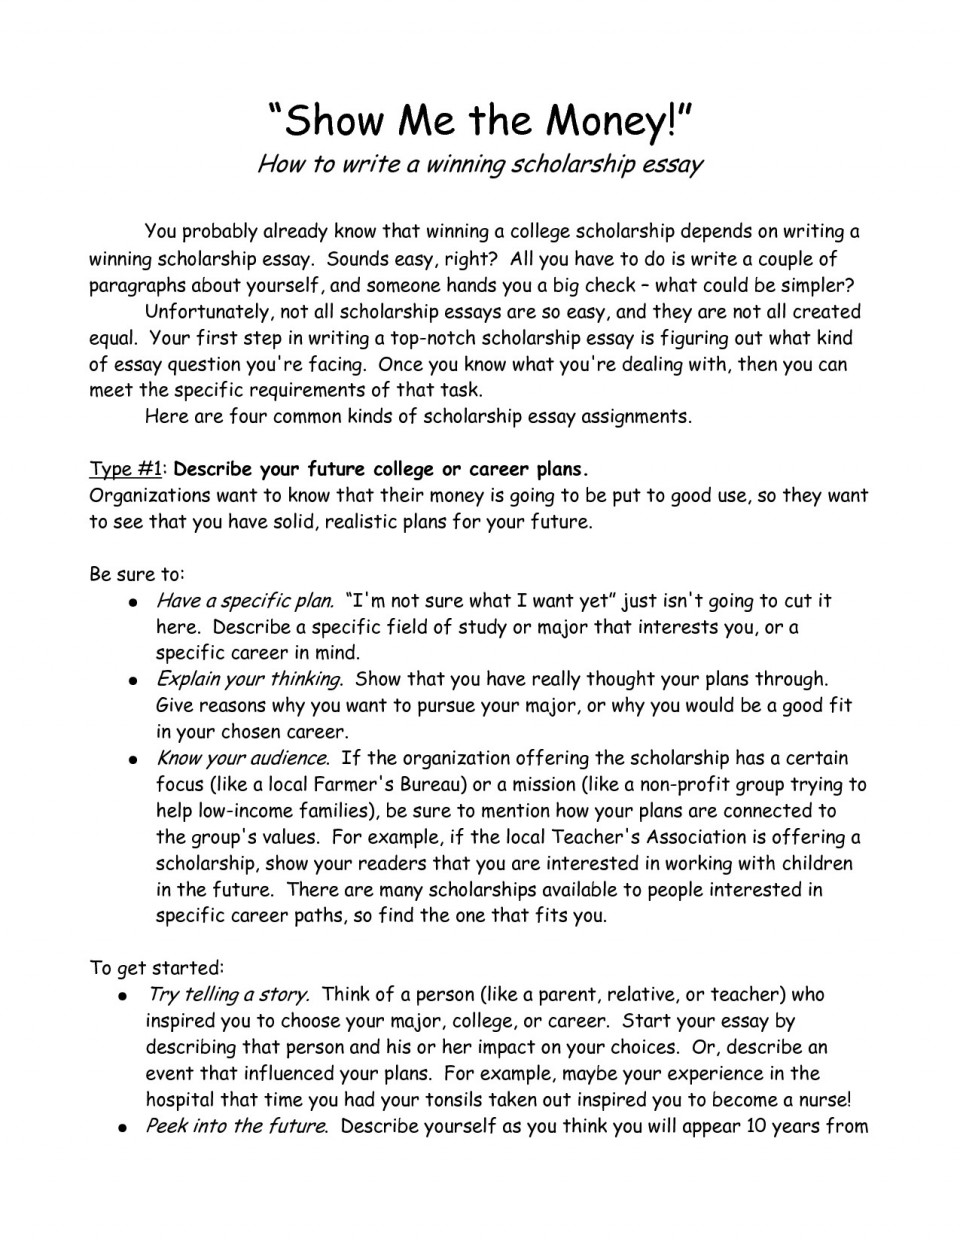 College application essay help online about yourself